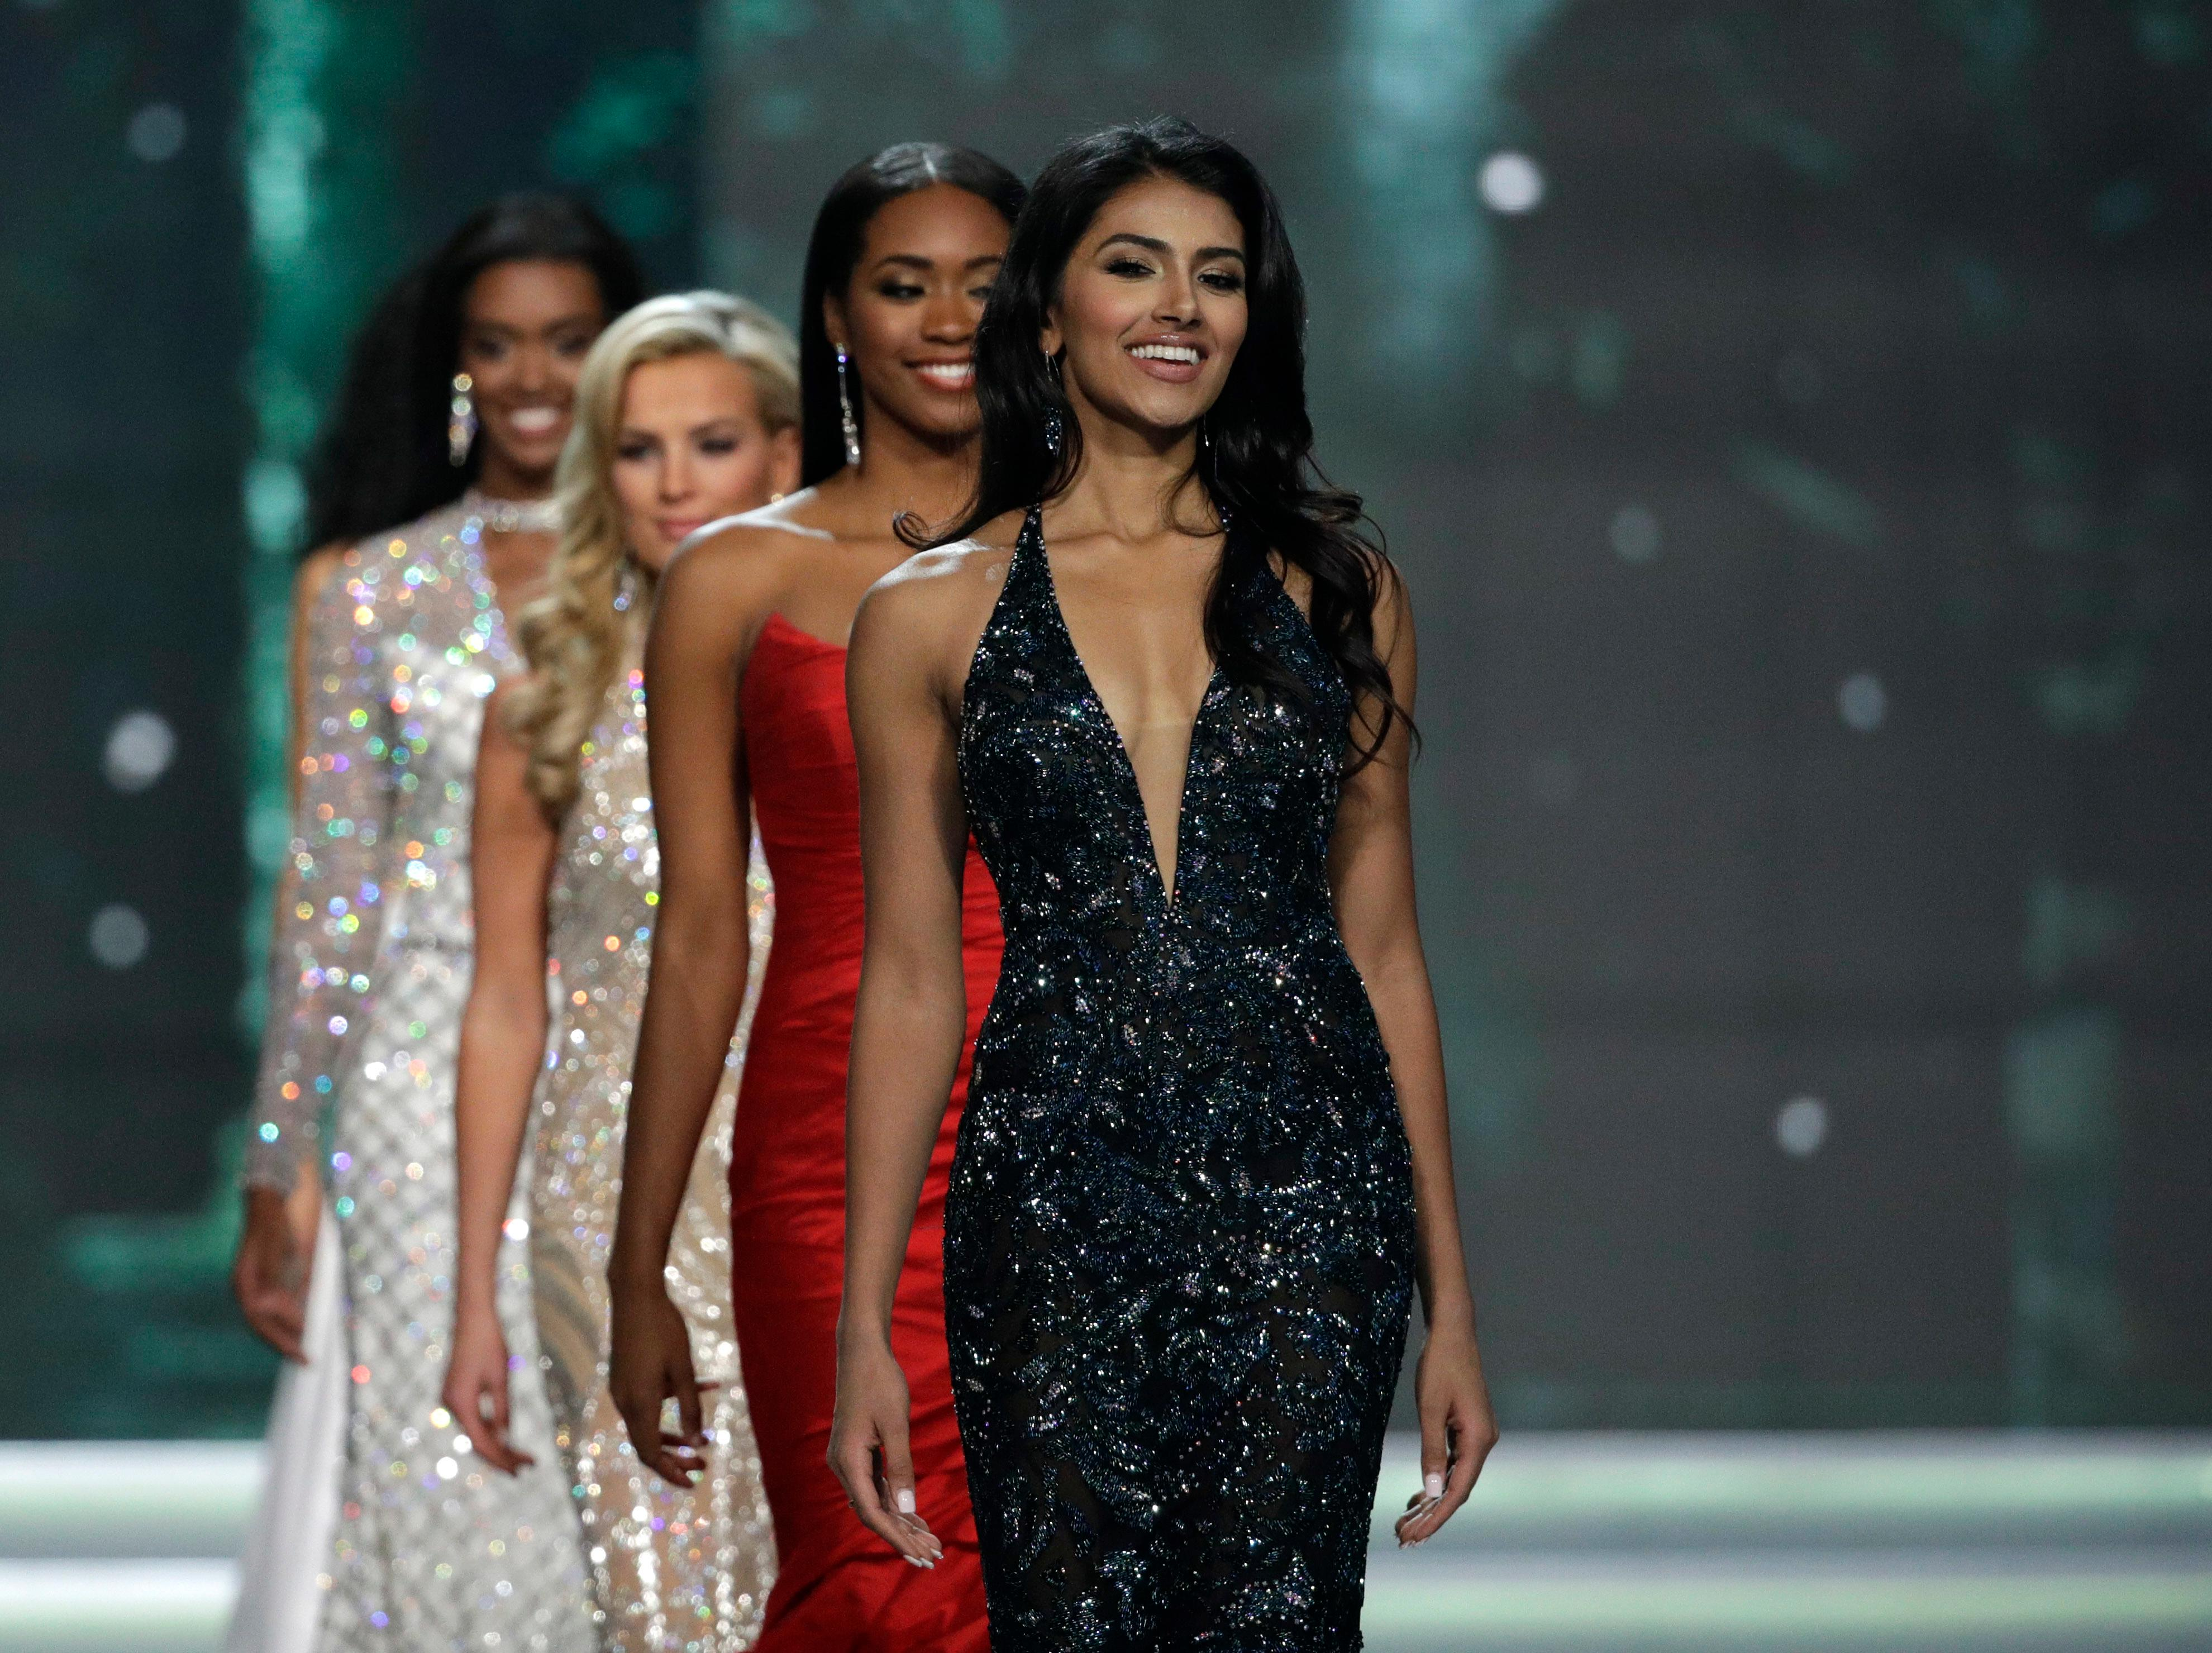 Miss New Jersey USA Chhavi Verg walks up the stage during the Miss USA contest Sunday, May 14, 2017, in Las Vegas. (AP Photo/John Locher)